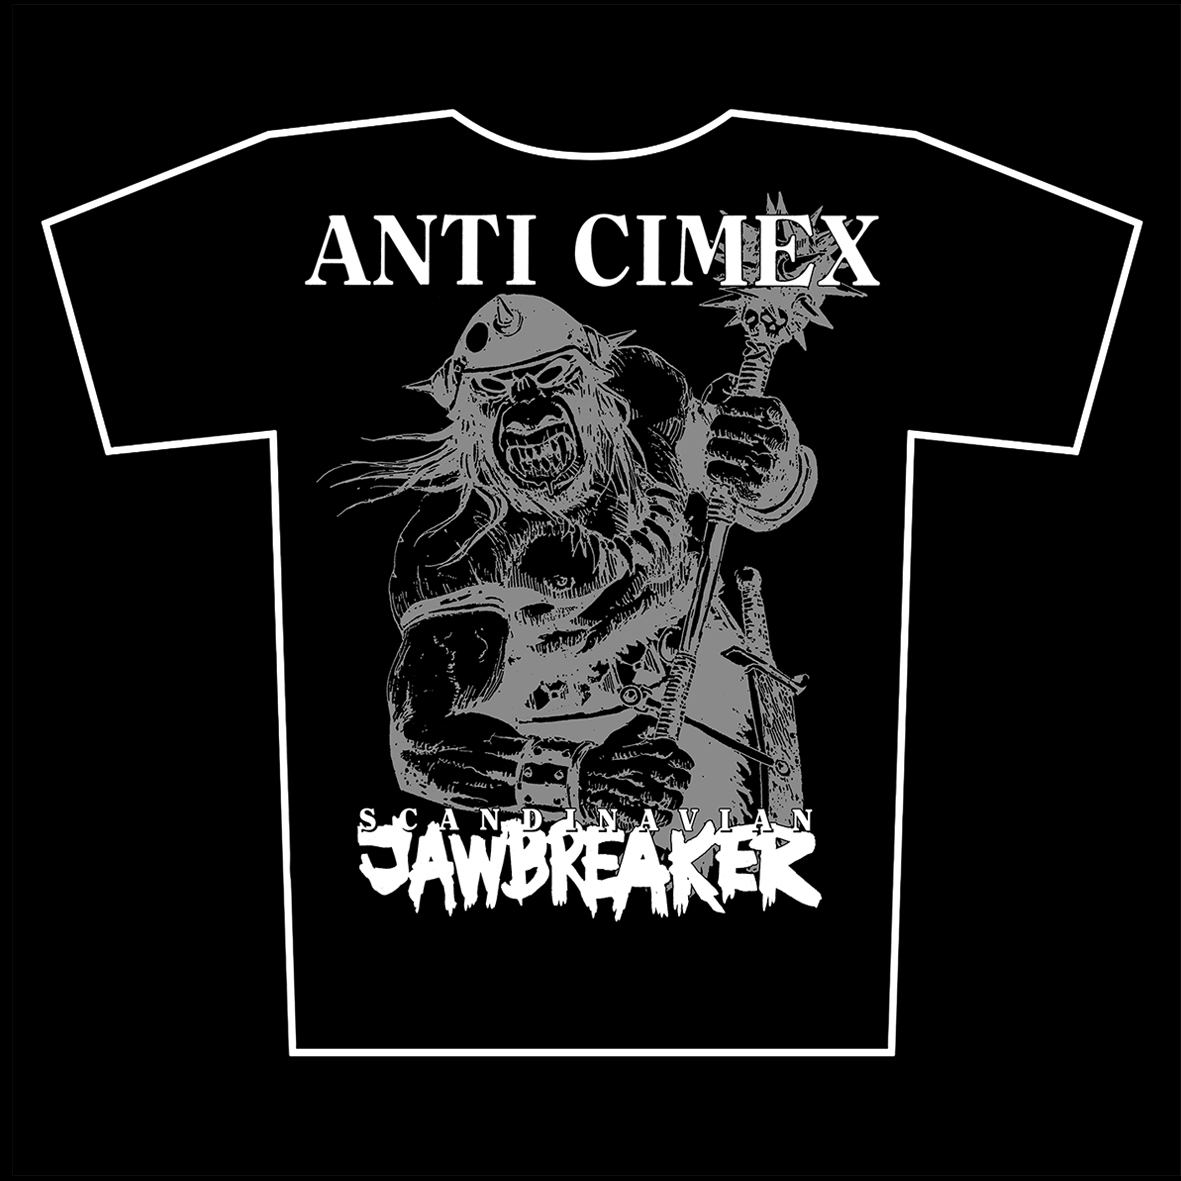 ANTI CIMEX – Scandinavian Jawbreaker – t-shirts available again